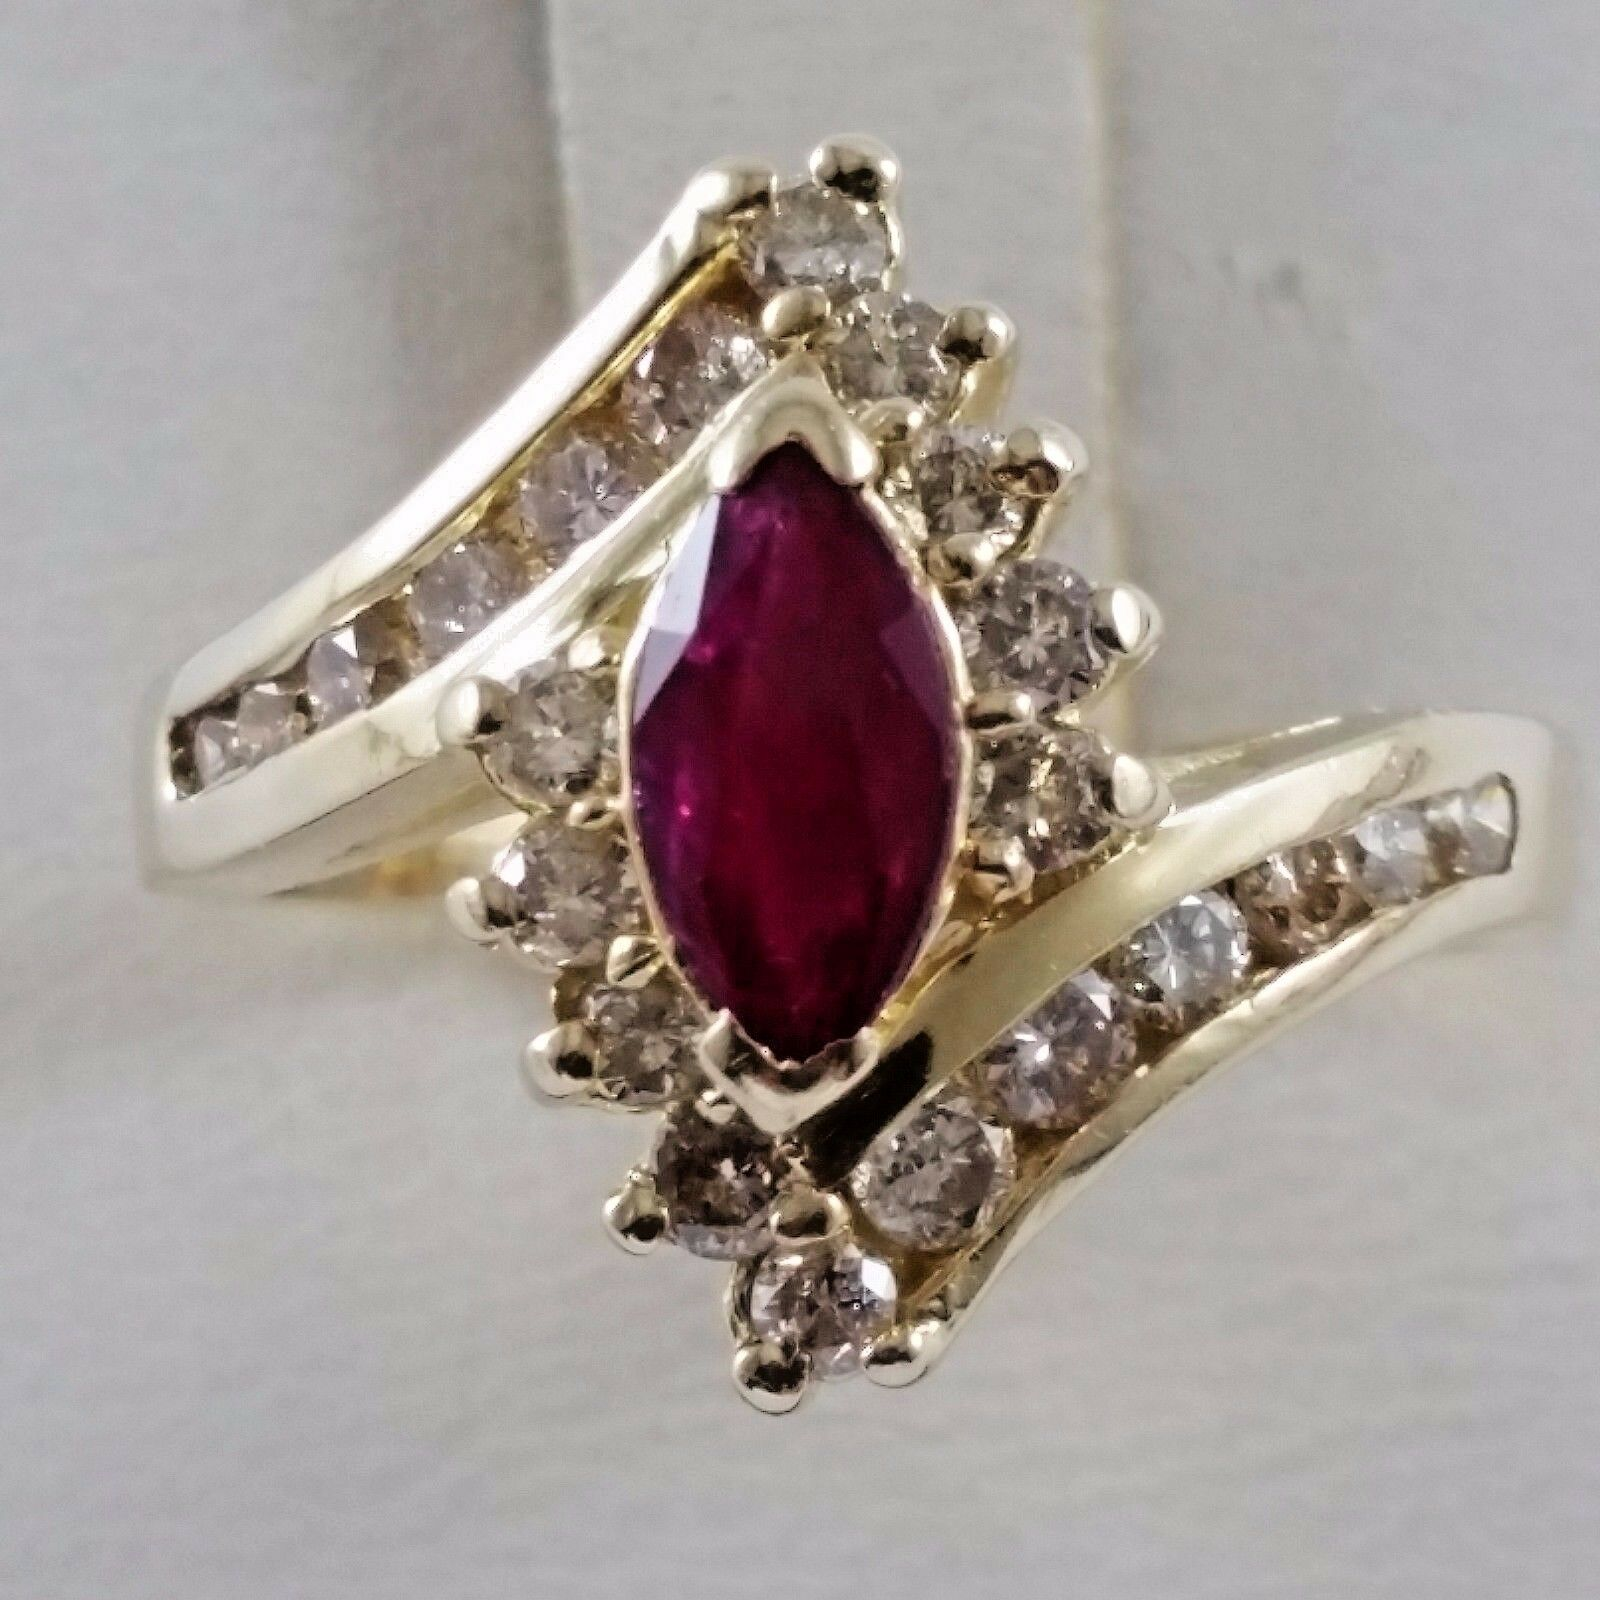 Exquisite 14K Karat Solid Yellow gold Ring with Diamonds & Ruby - Nice